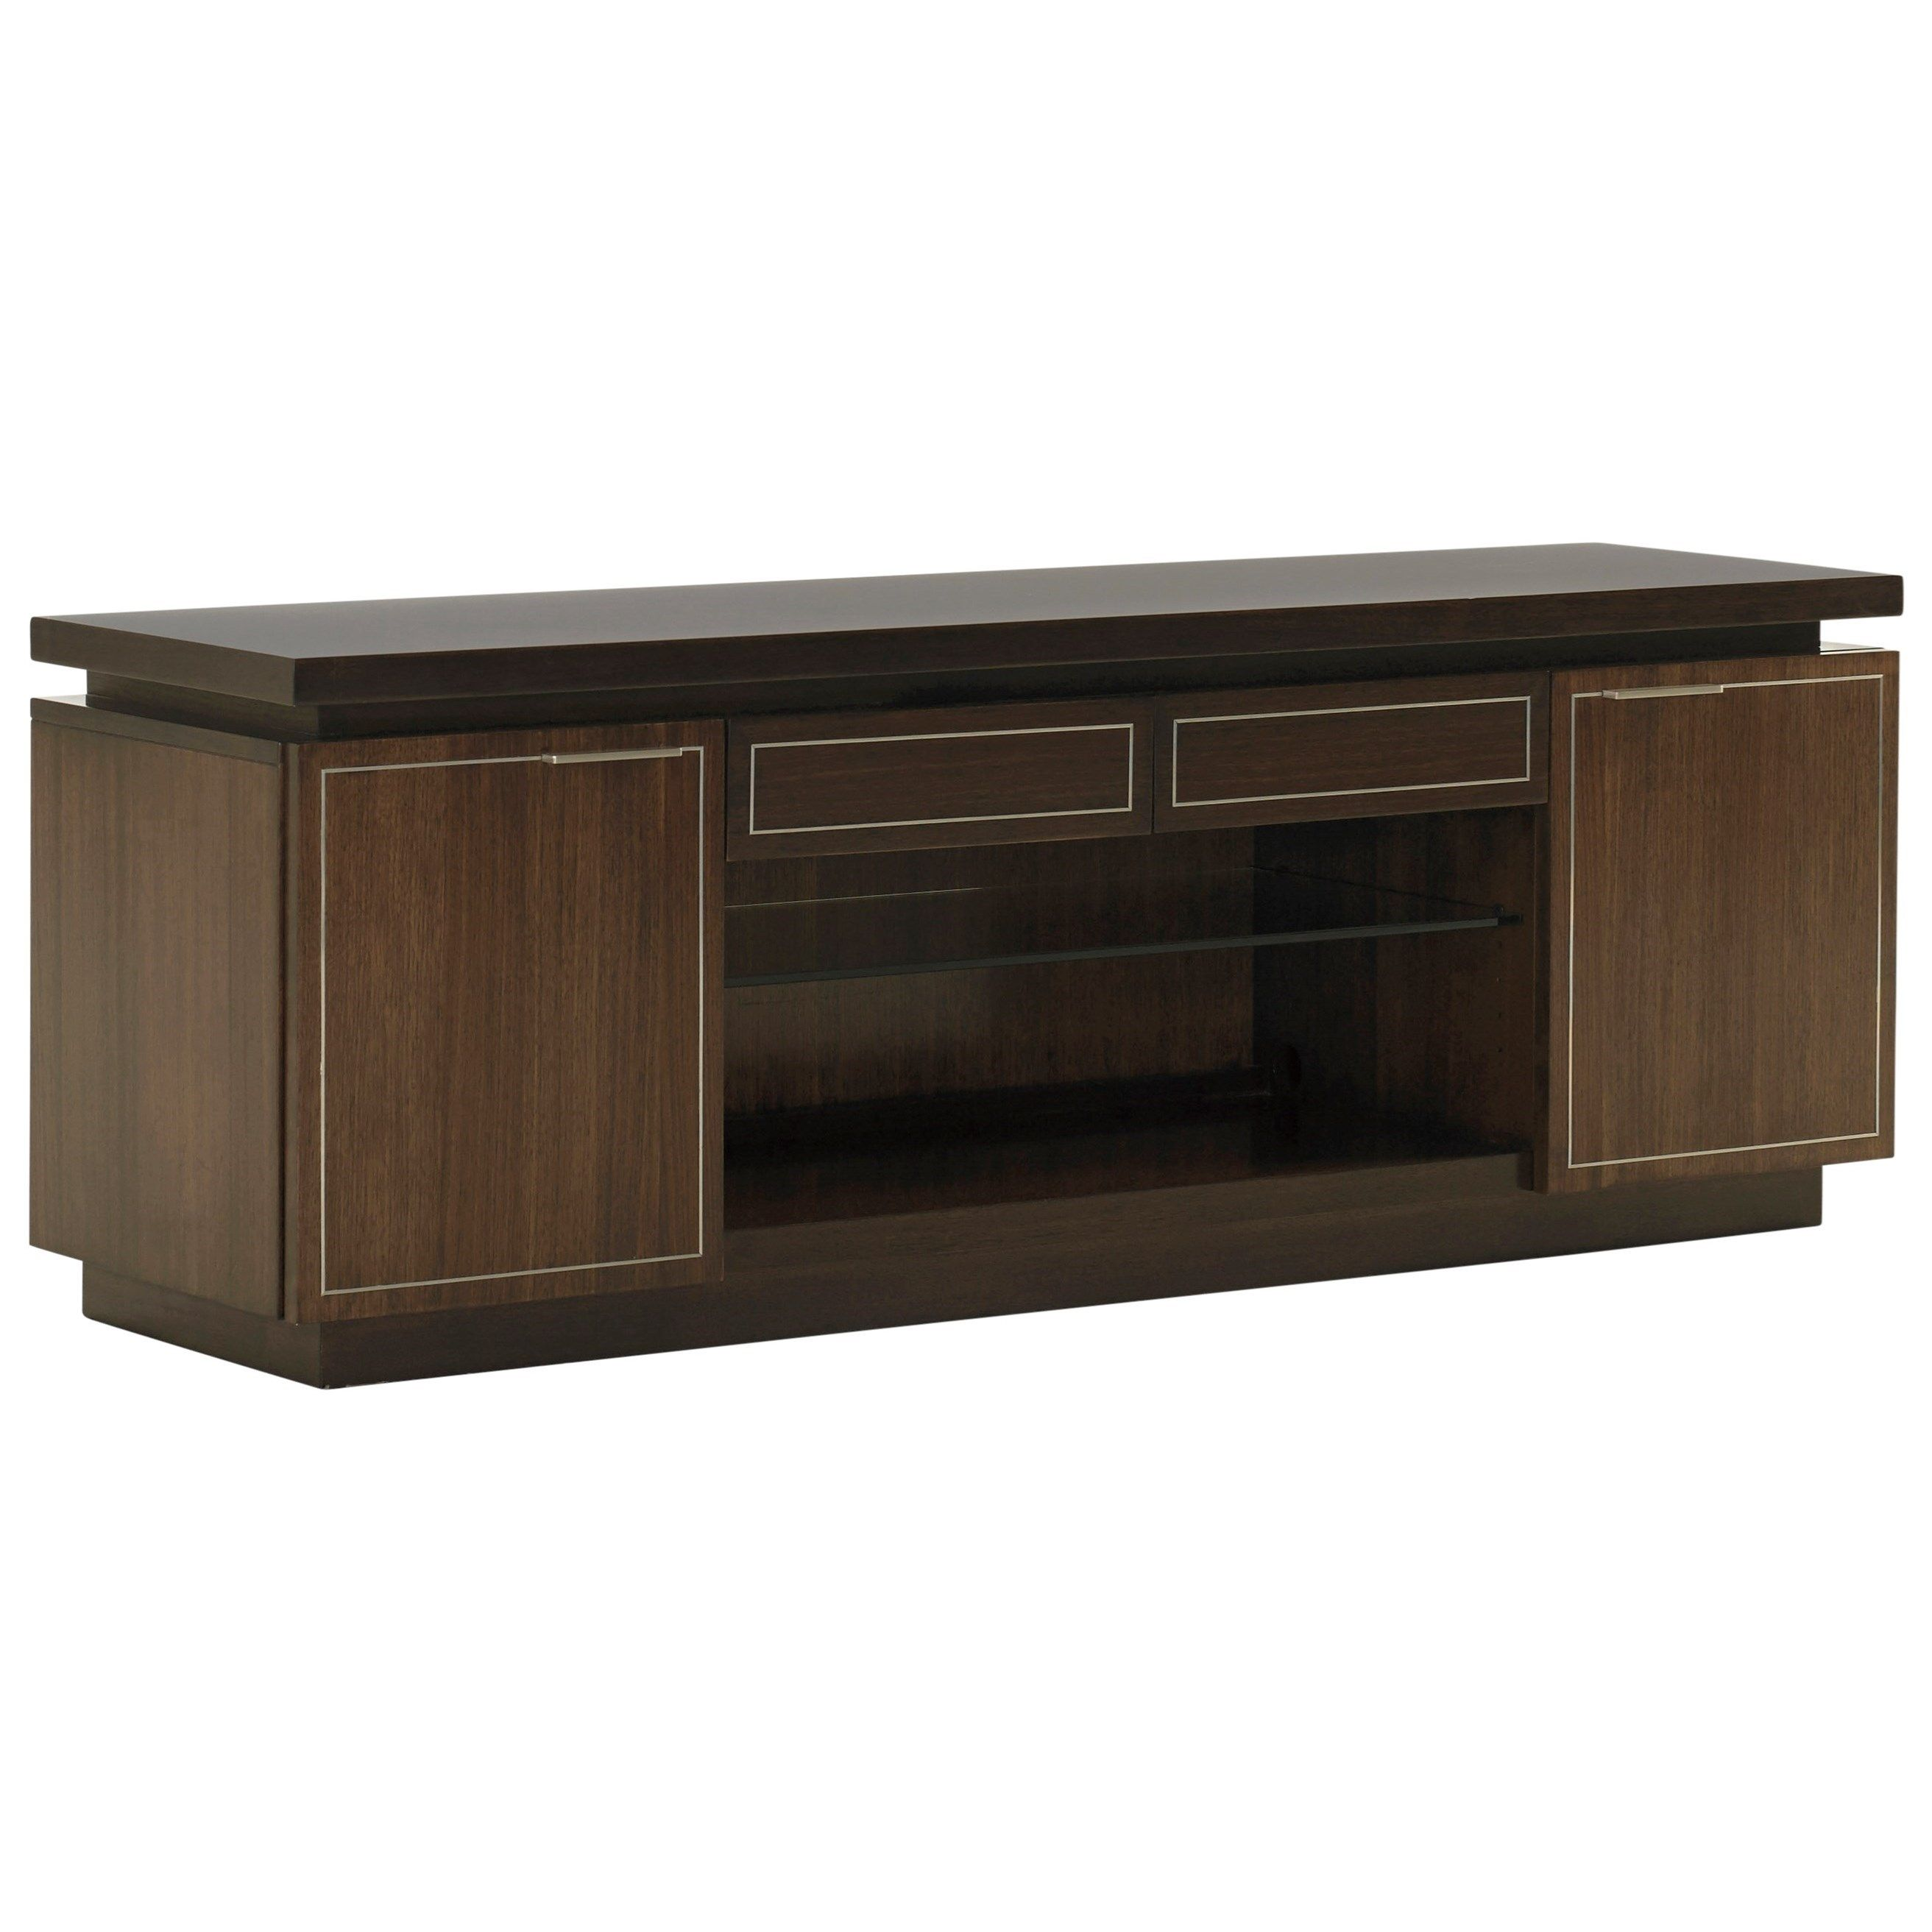 Macarthur Park Highview Media Console By Lexington At Baers Furniture